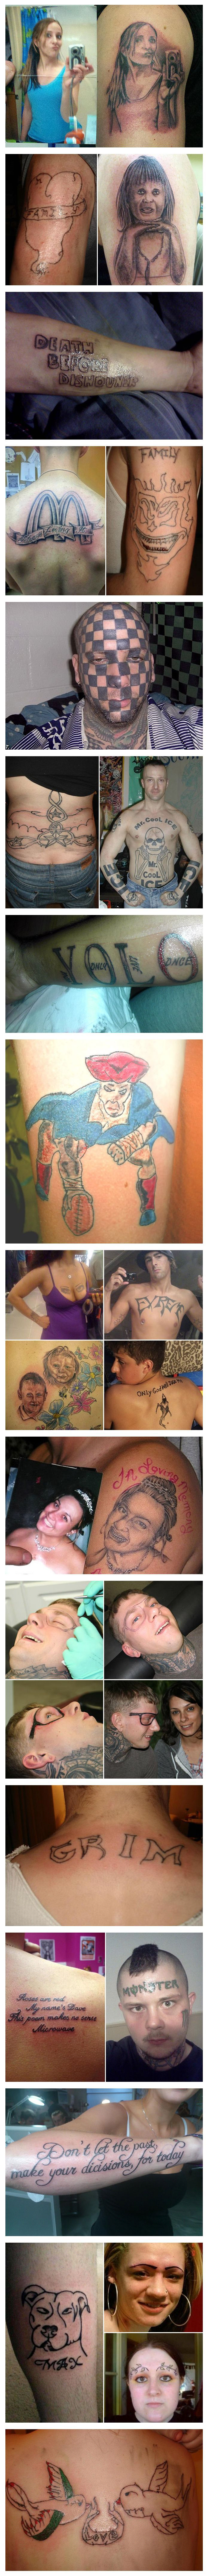 Extremely ugly and stupid tattoos. Many regerts.